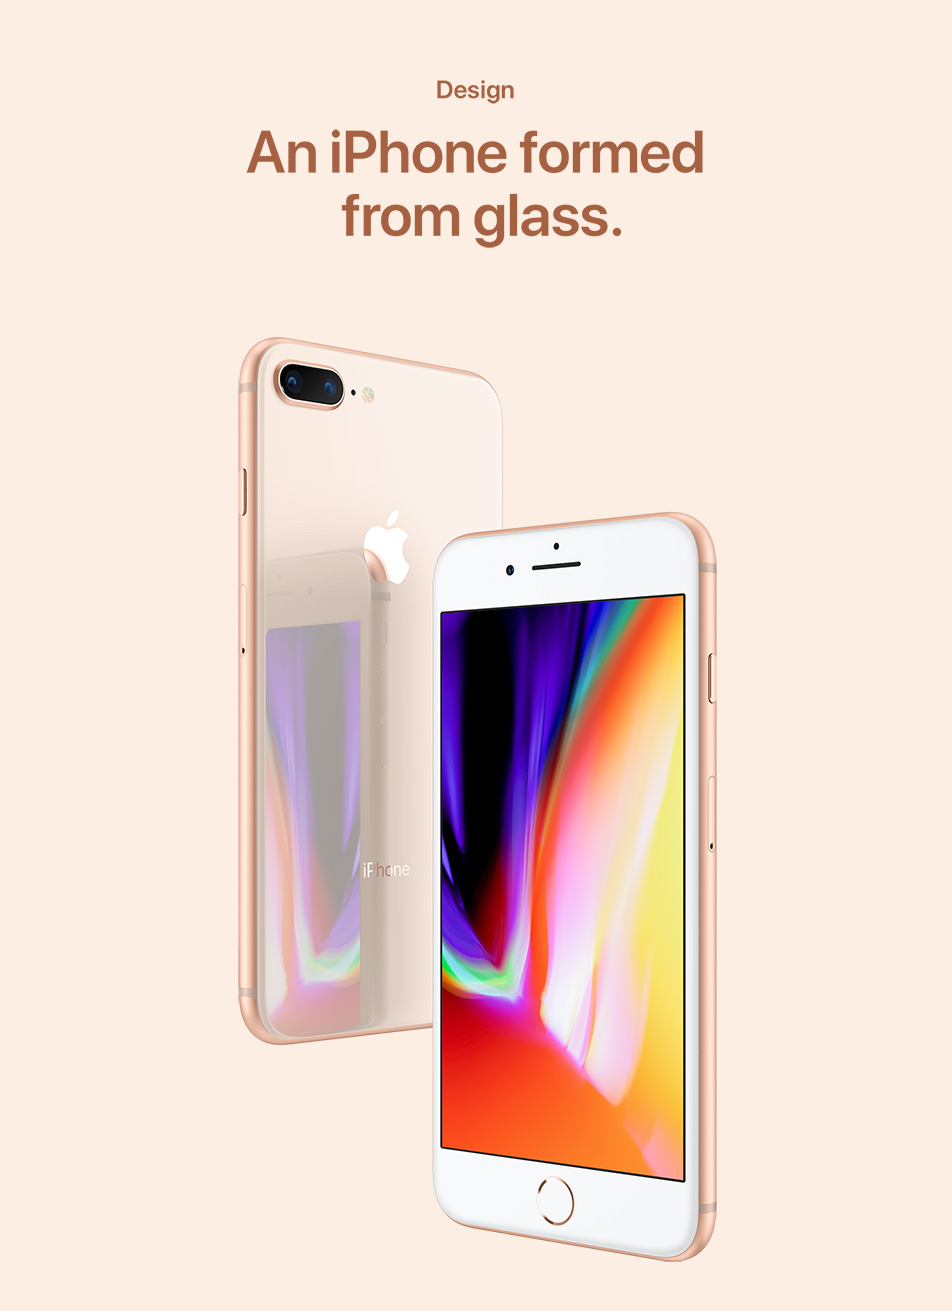 iPhone 8 & 8 Plus - Design - An iPhone formed from glass